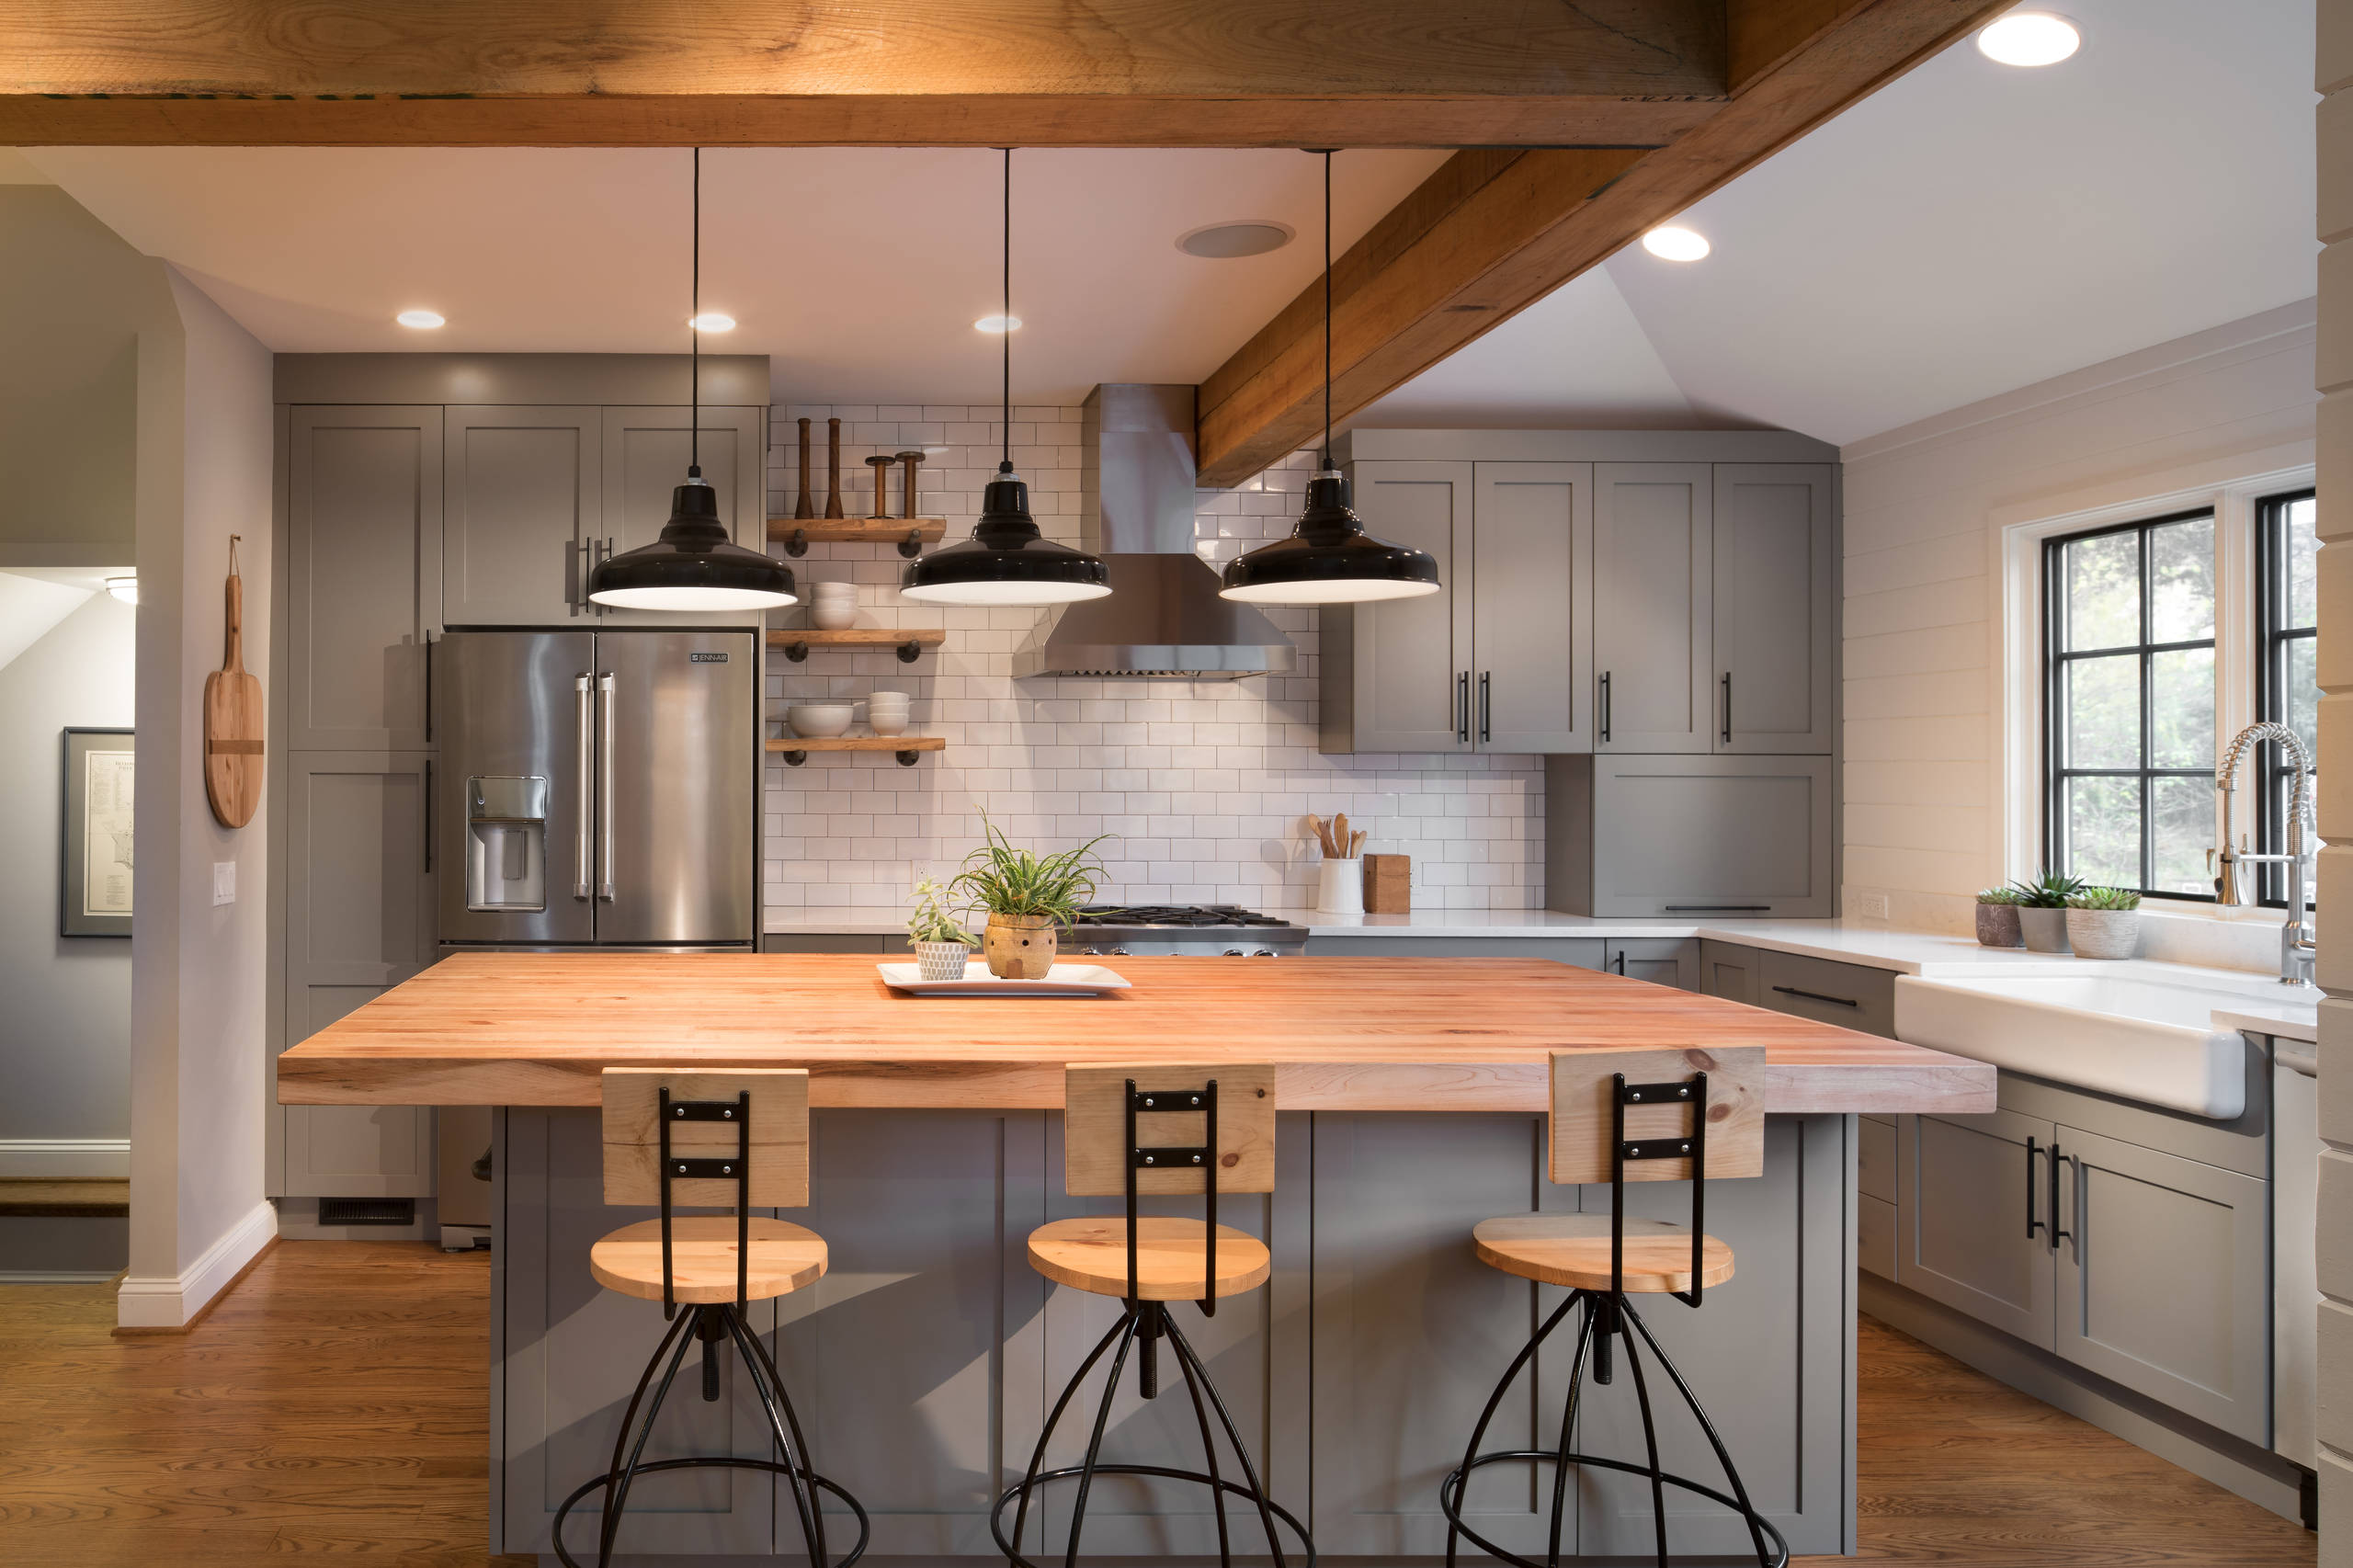 999 Beautiful Kitchen With Wood Countertops Pictures Ideas October 2020 Houzz,How To Make An Envelope With Construction Paper